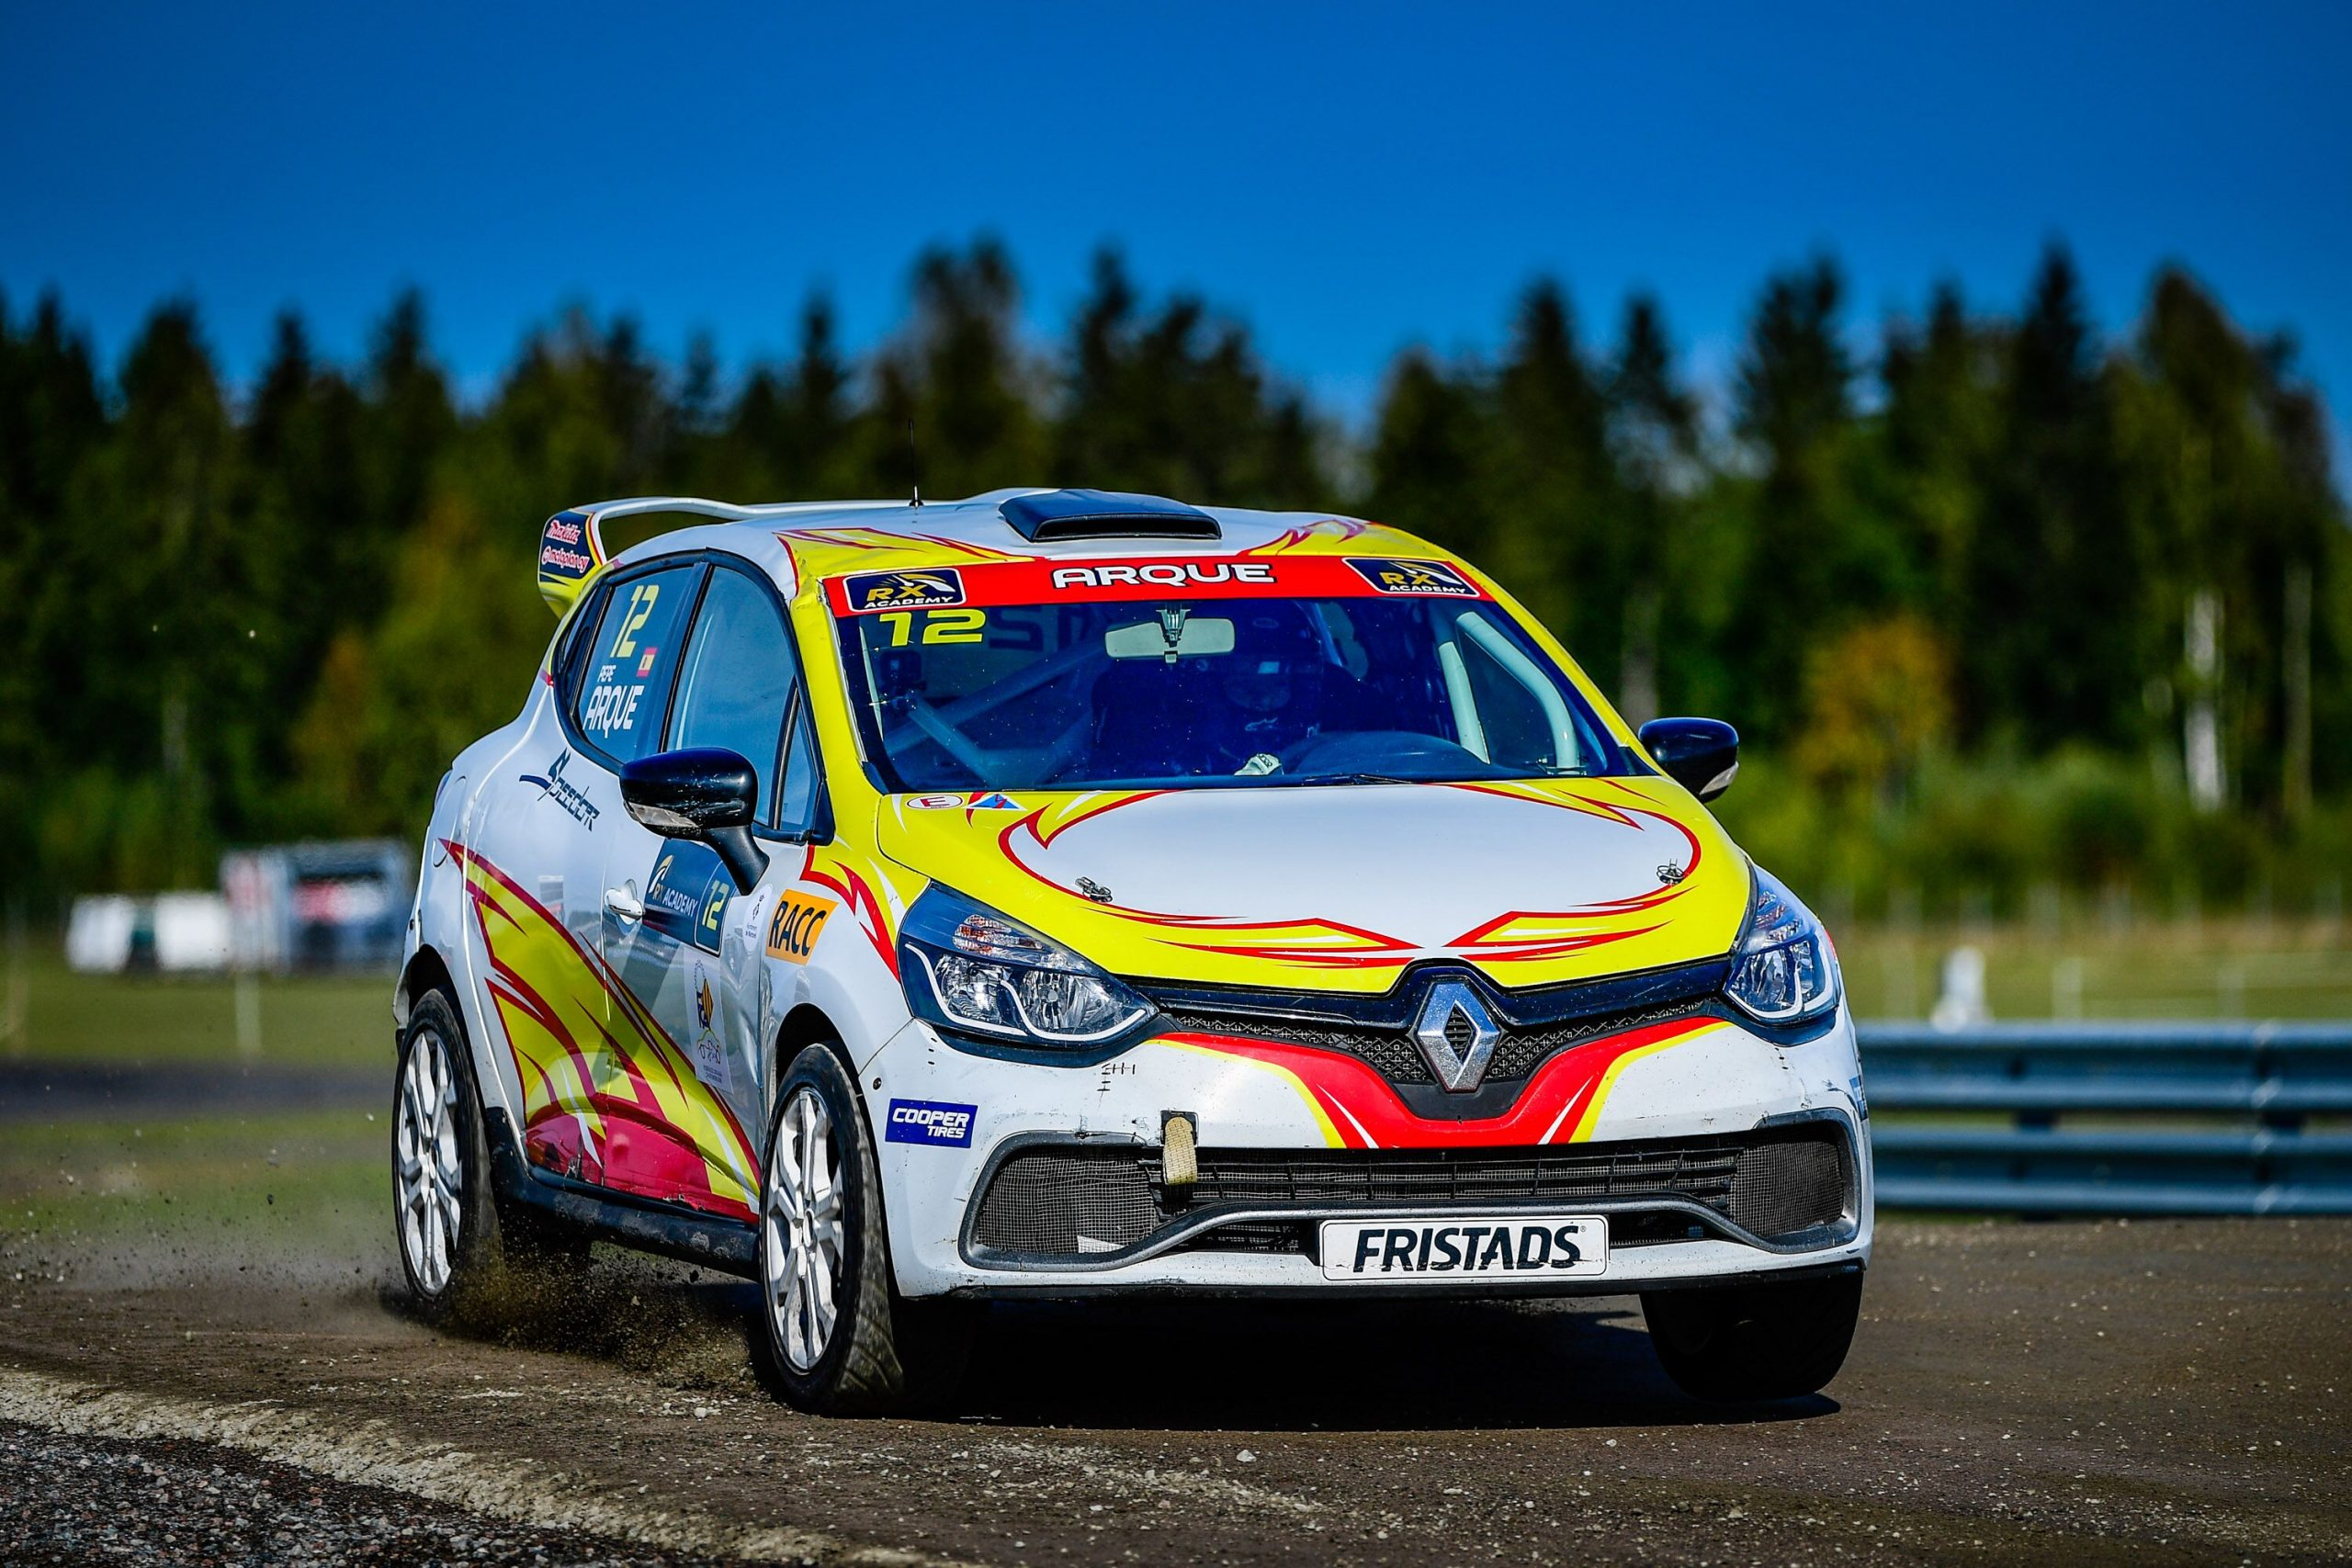 Arqué the latest arrival on FIA RX2e grid as Crosscar ace signs up for inaugural all-electric event, QEV